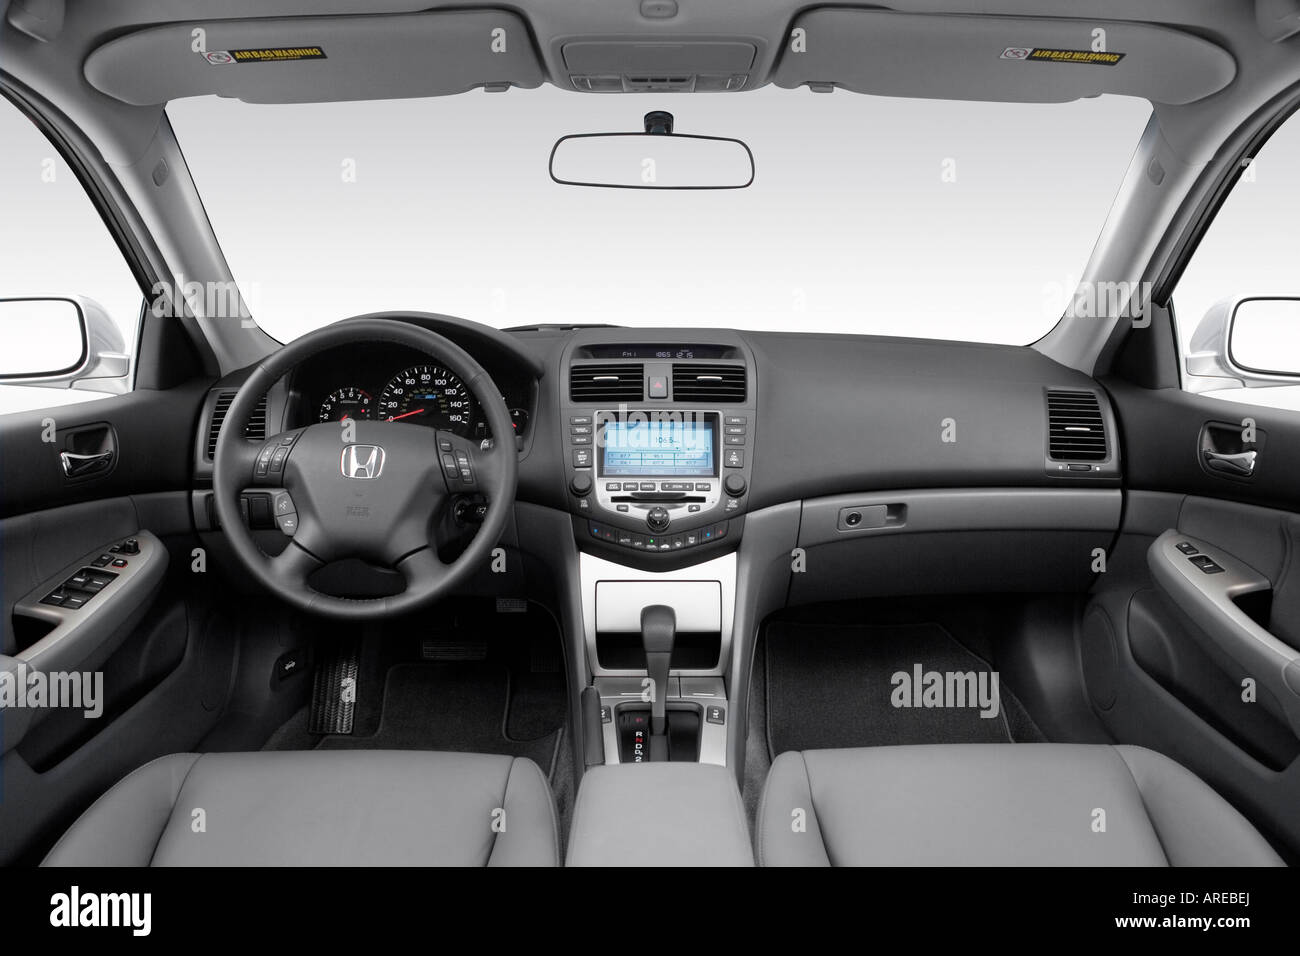 hight resolution of 2006 honda accord hybrid in silver dashboard center console gear shifter view